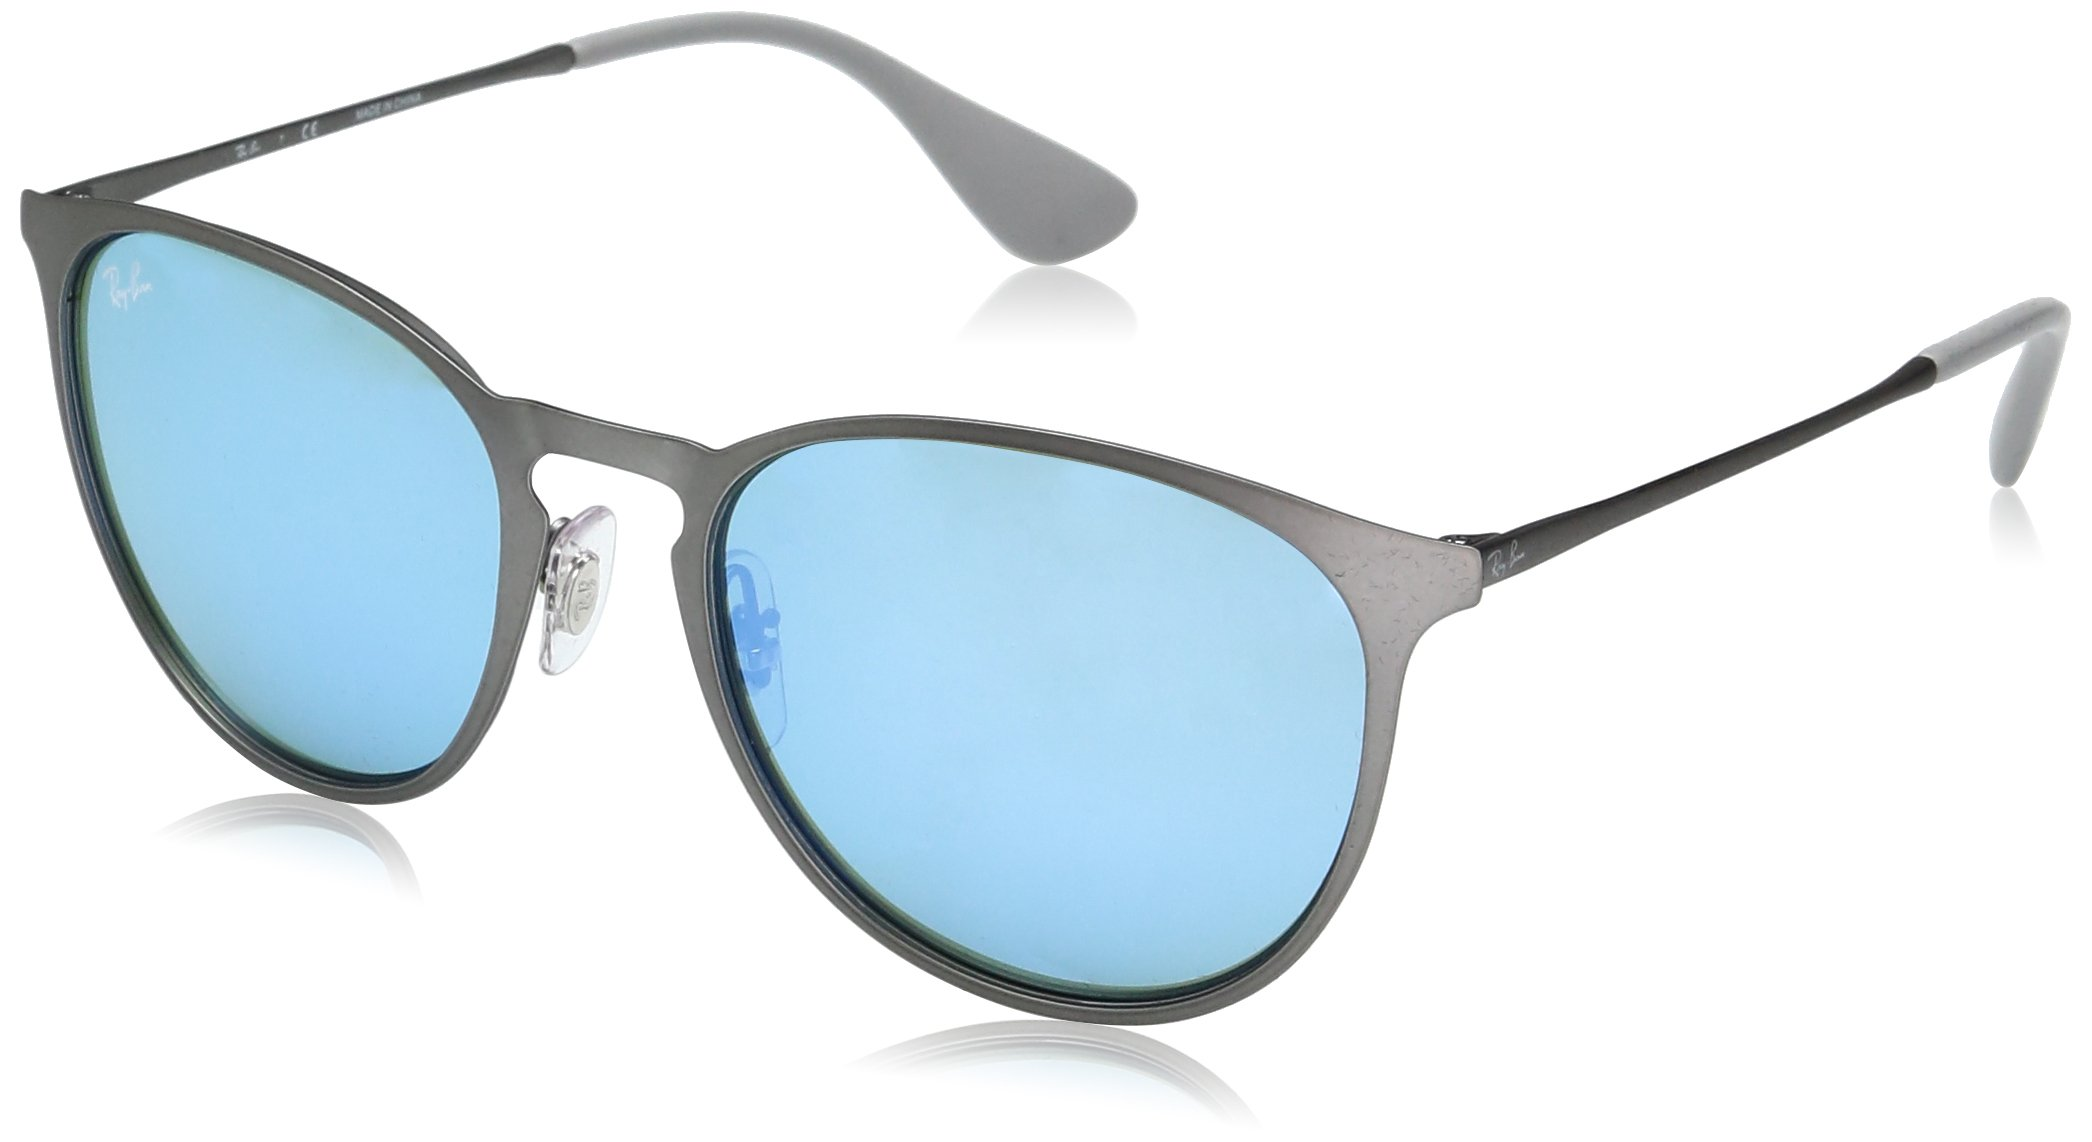 Ray-Ban Erika Metal RB3539 9015B4 Non-Polarized Sunglasses, Rubber Gunmetal/Green Light Flash Blue, 54 mm by Ray-Ban